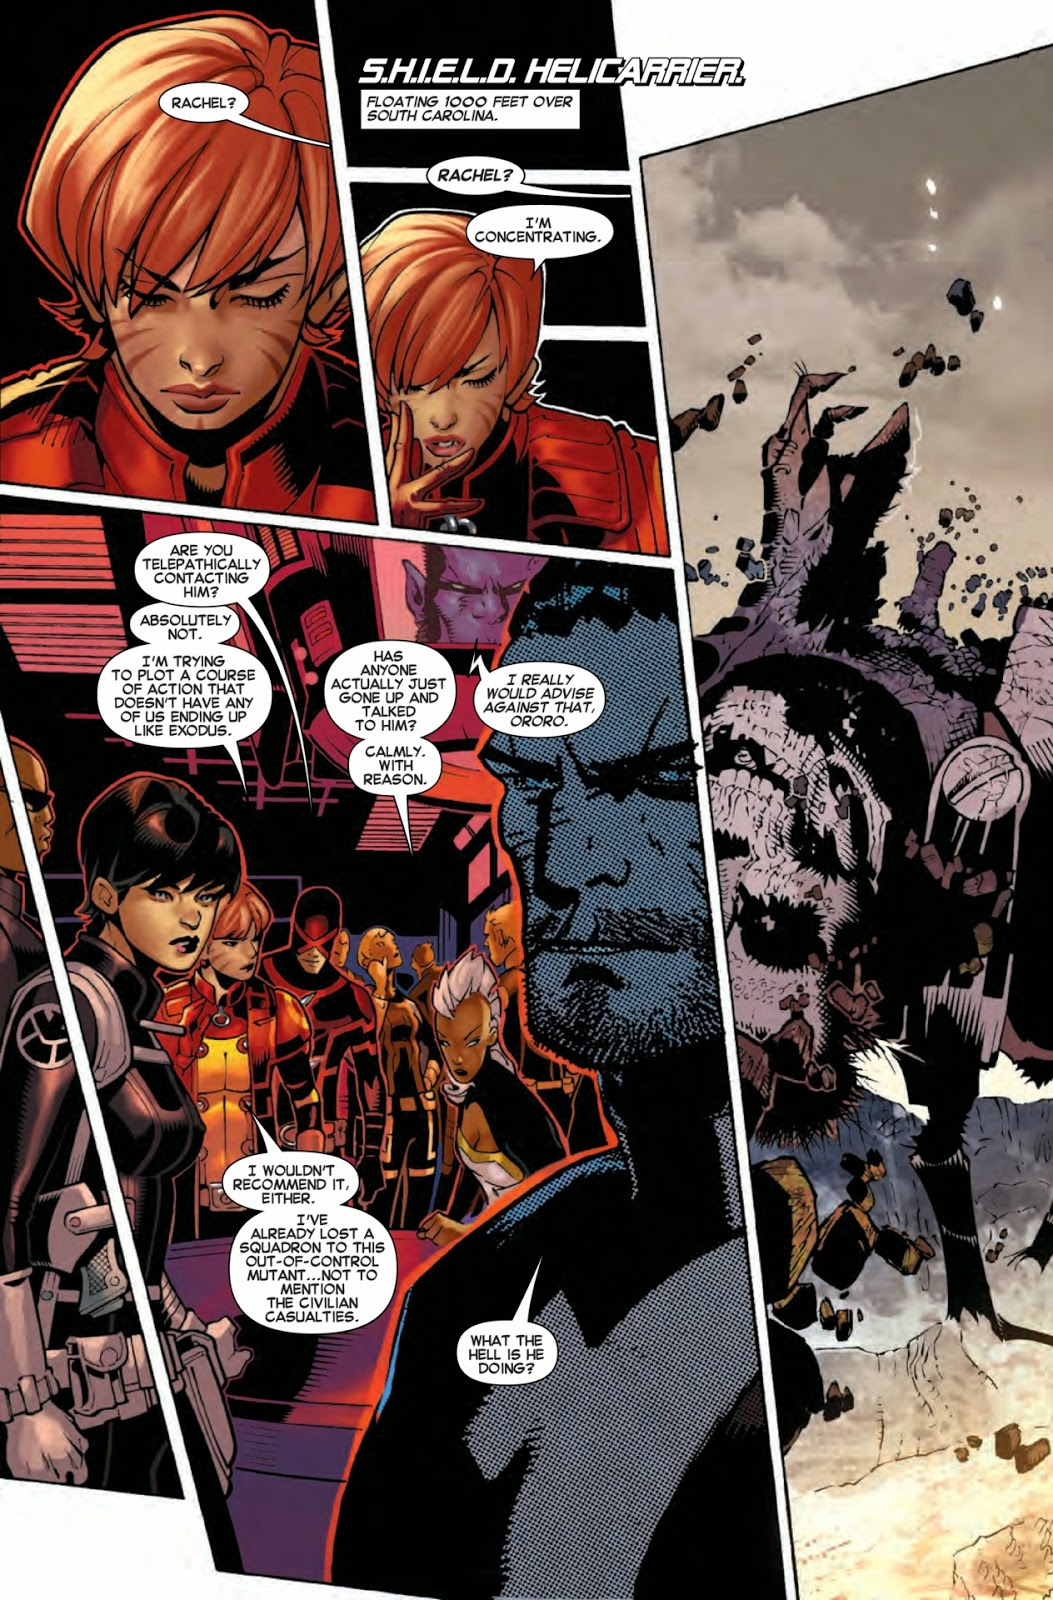 S.H.I.E.L.D. and the X-Men confront Matthew Malloy